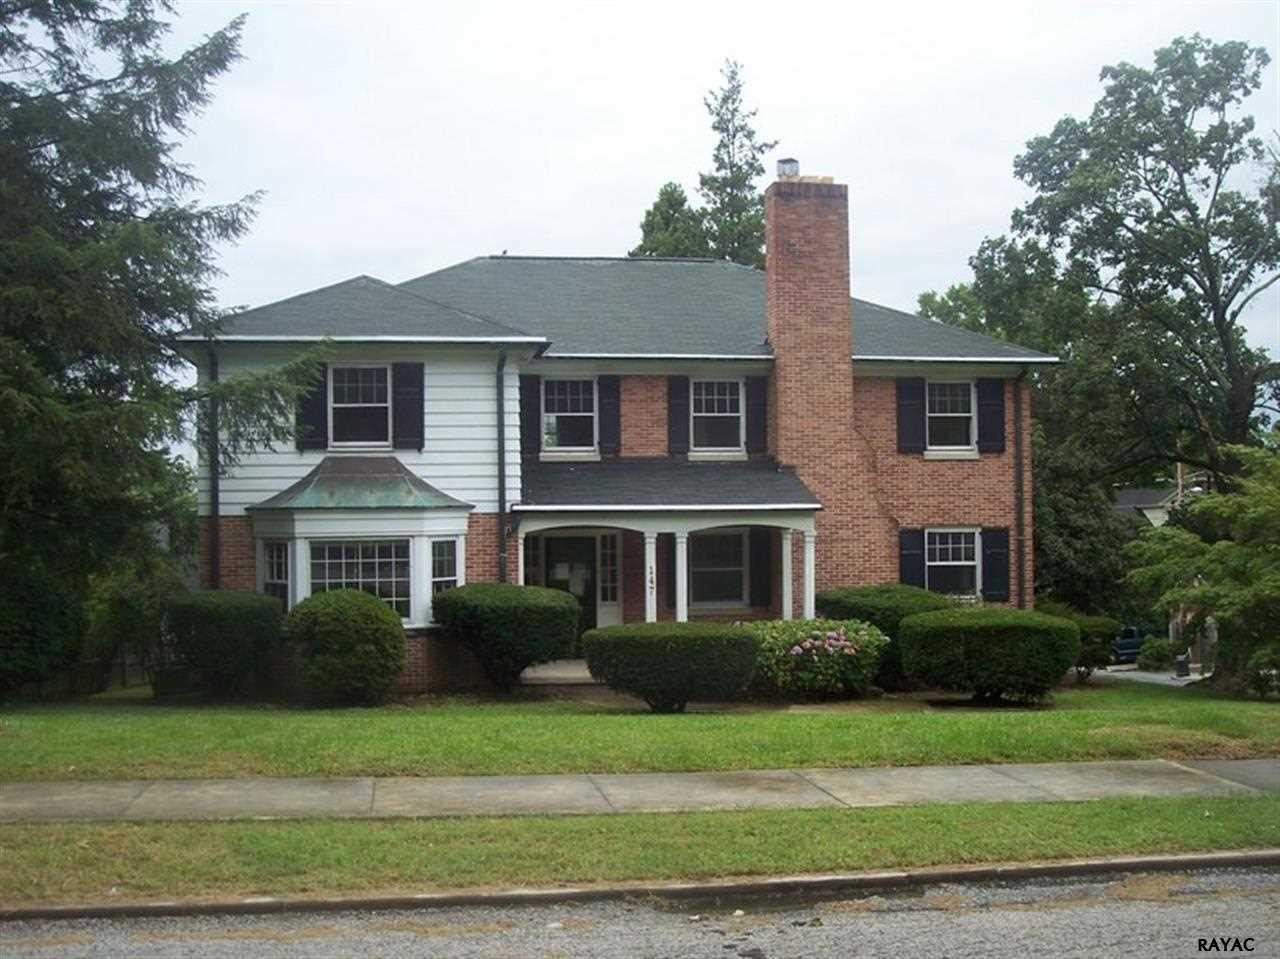 lewisberry pennsylvania homes lewisberry pa real estate markham ct for sale by owner homes